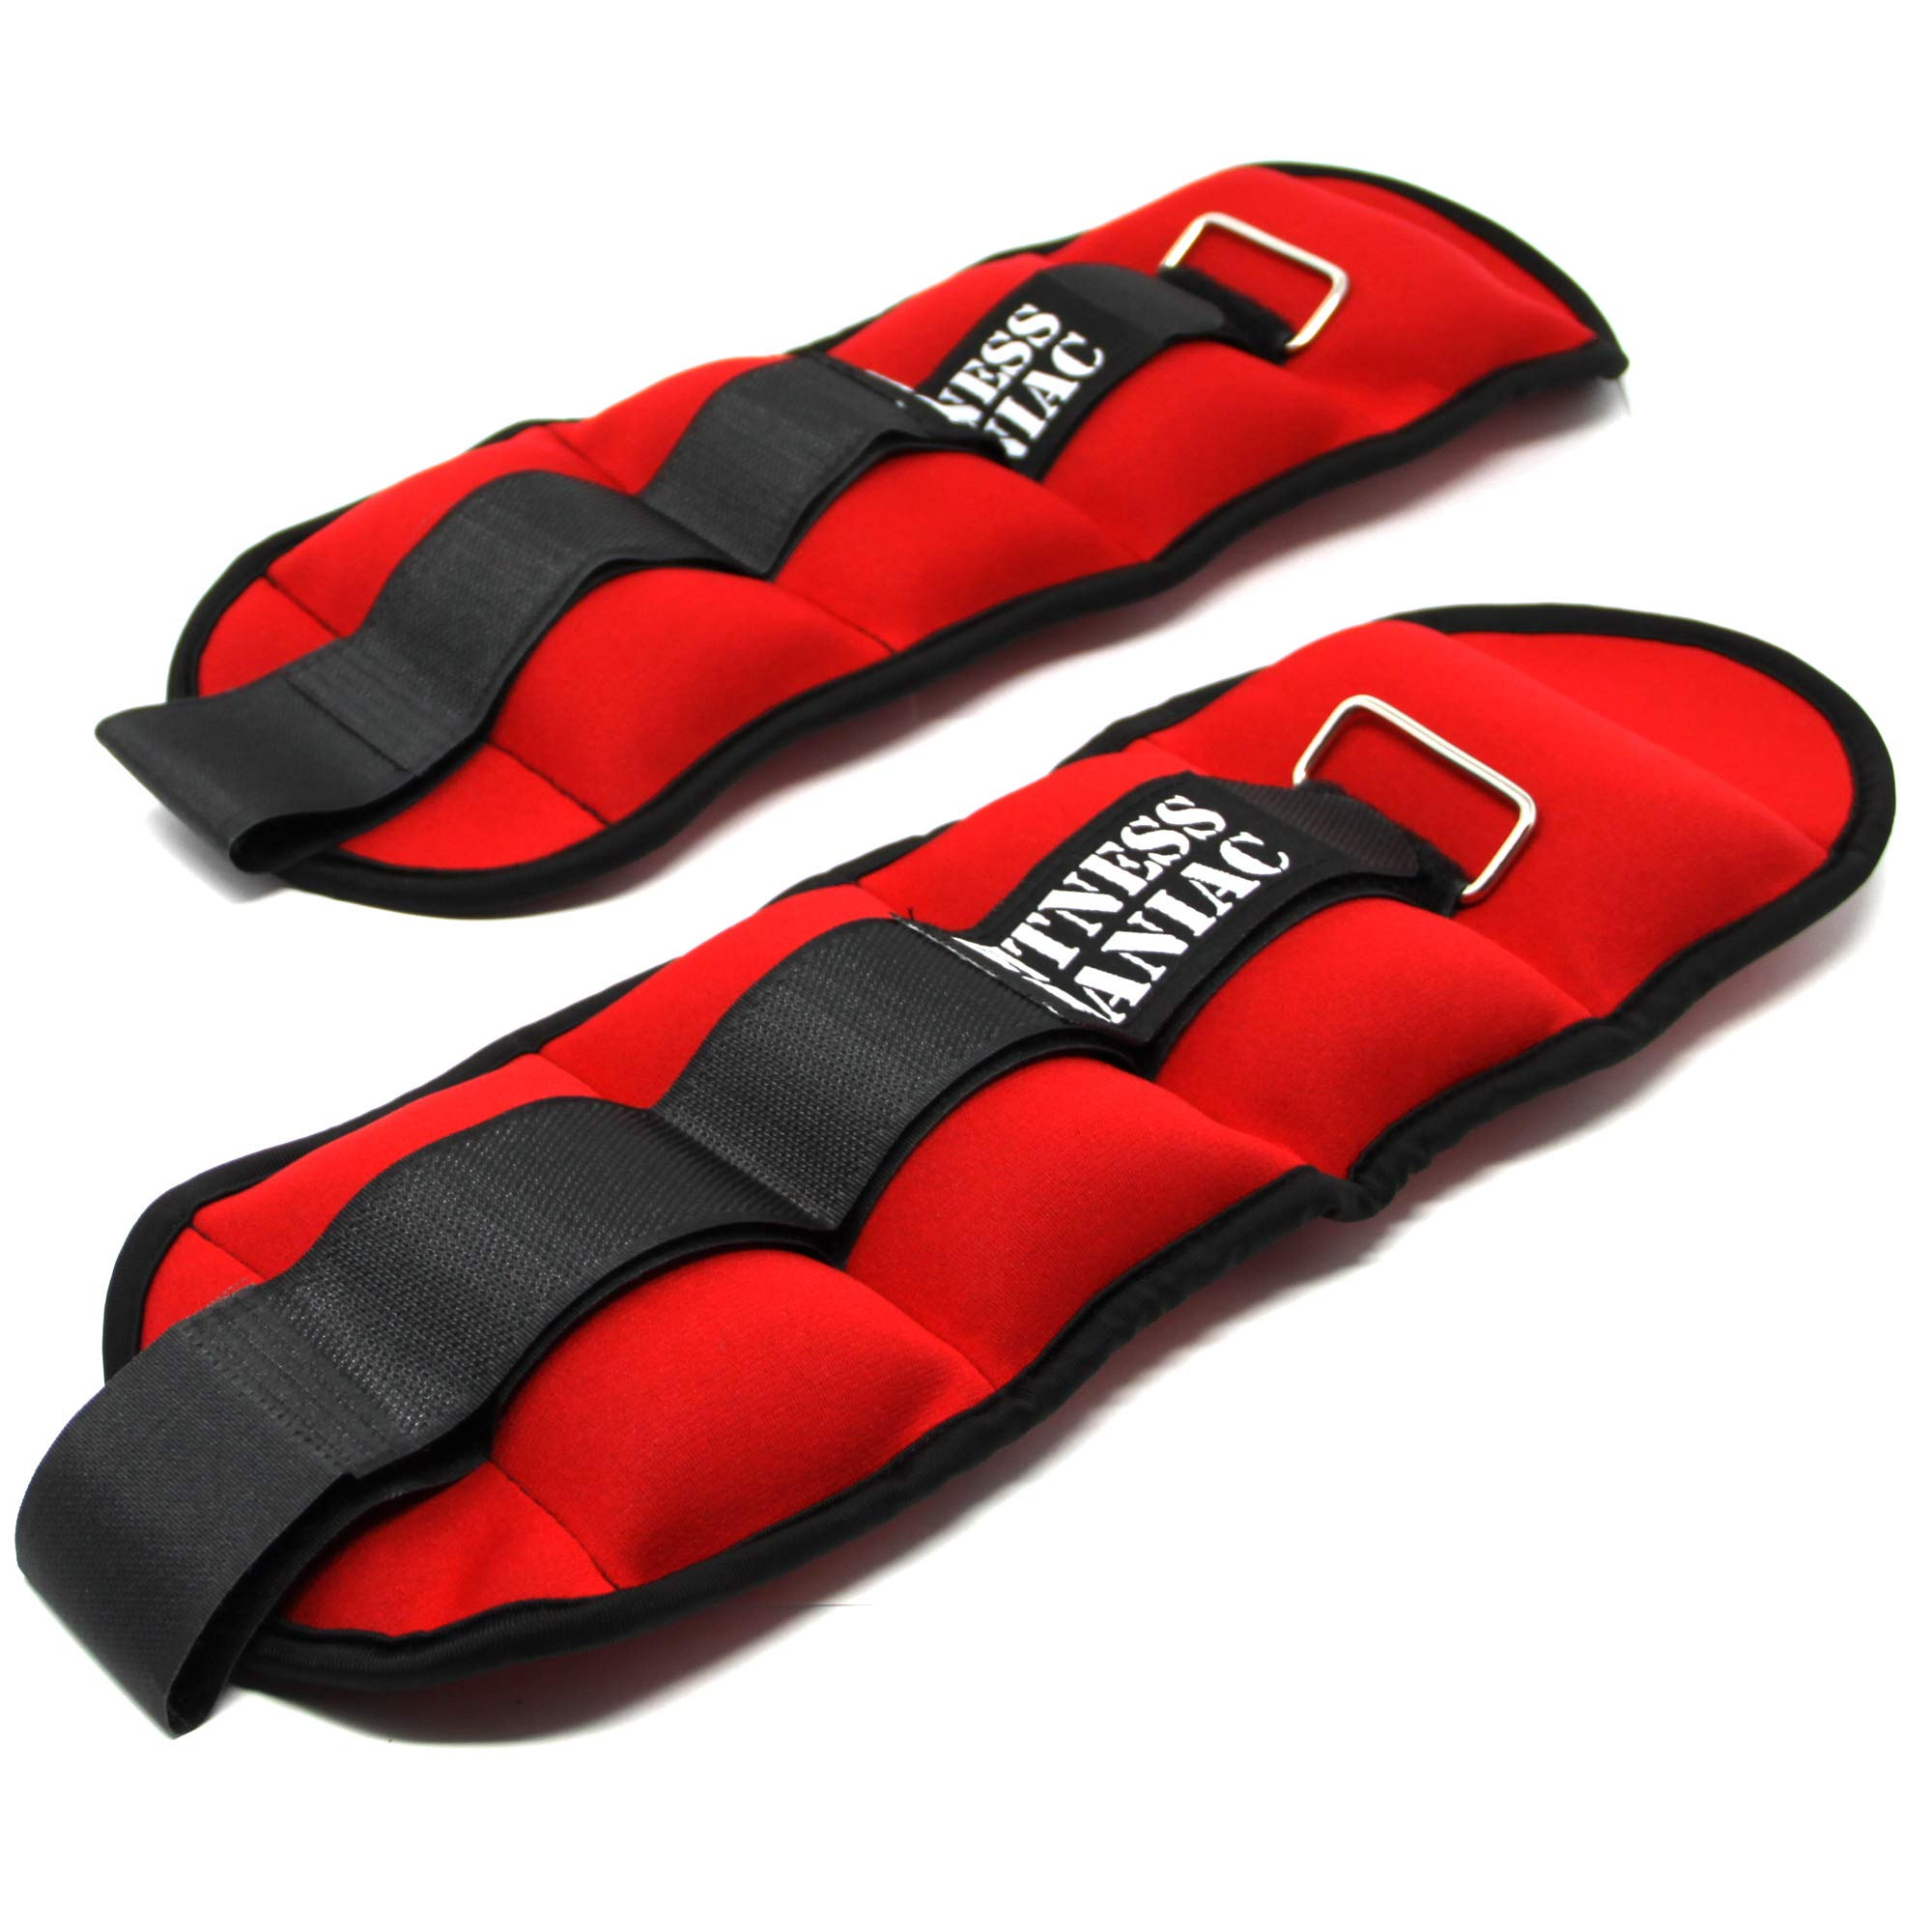 Adjustable Strap Wrist Ankle Weights 4lbs 6lbs 8lbs 10lbs Fitness Training Leg Exercise (4) by FITNESS MANIAC (Image #6)